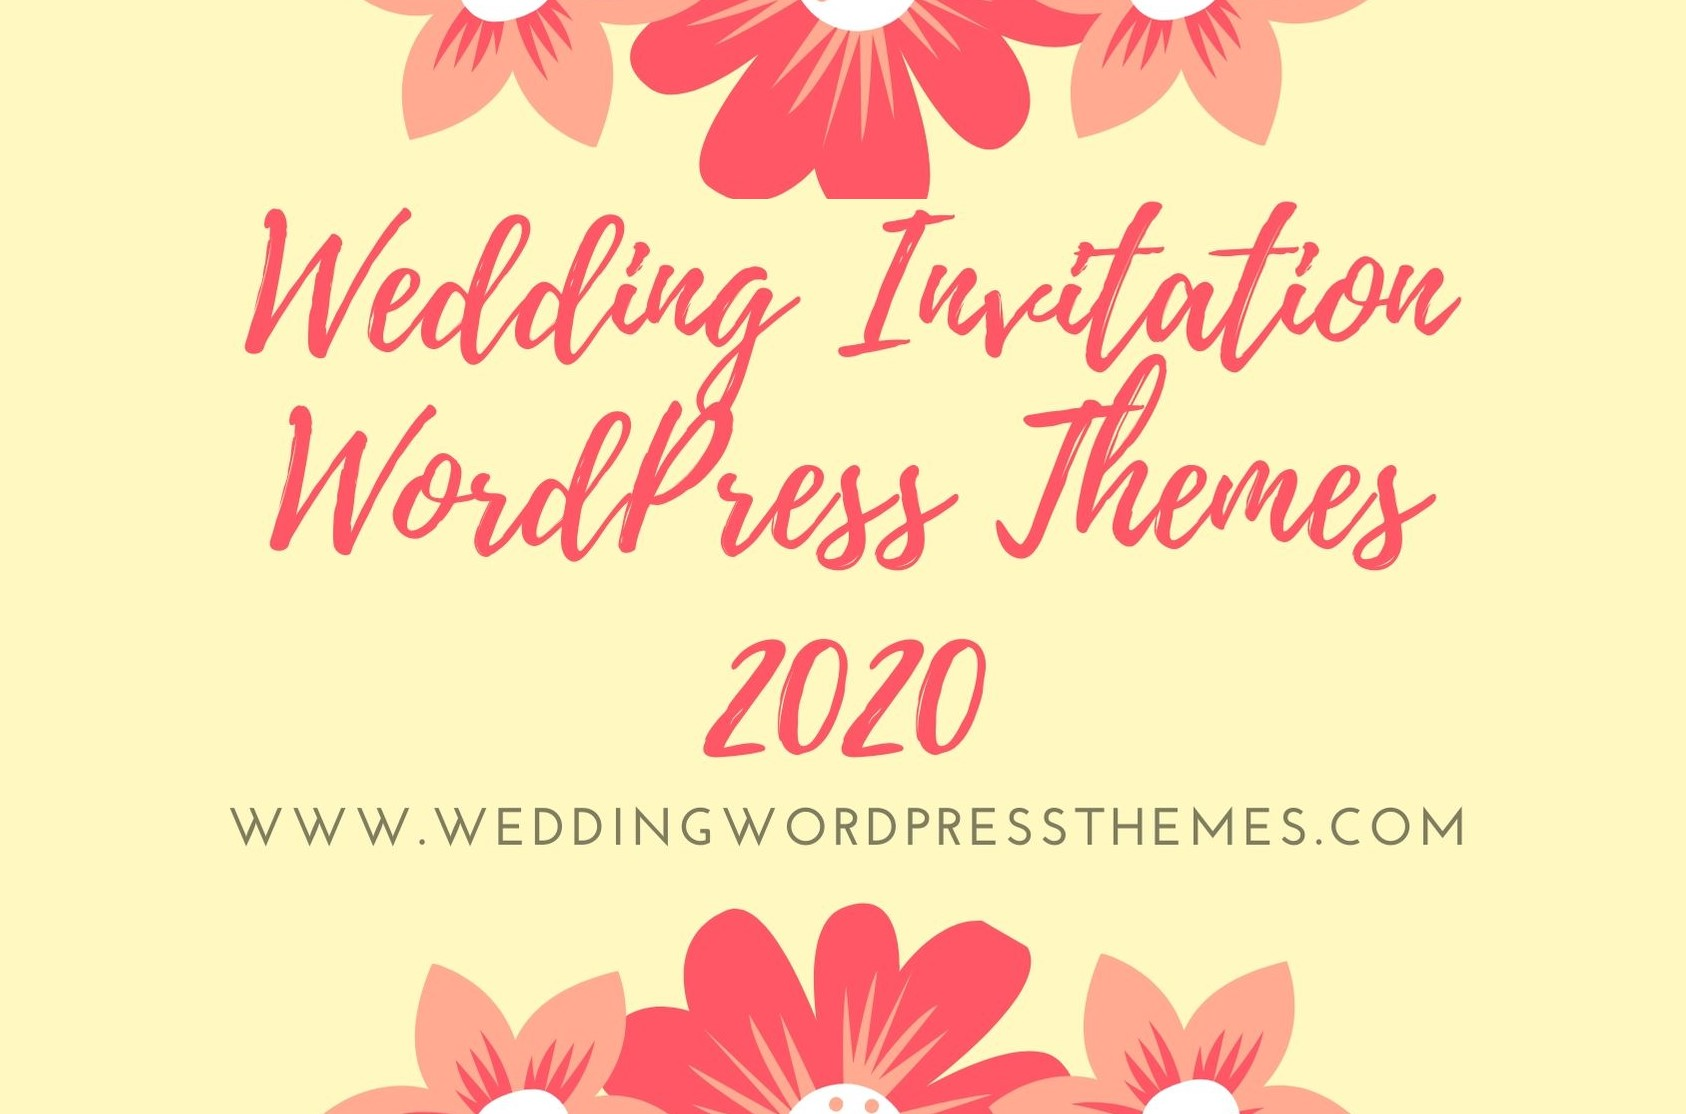 Wedding Invitation Wordpress Themes 2020